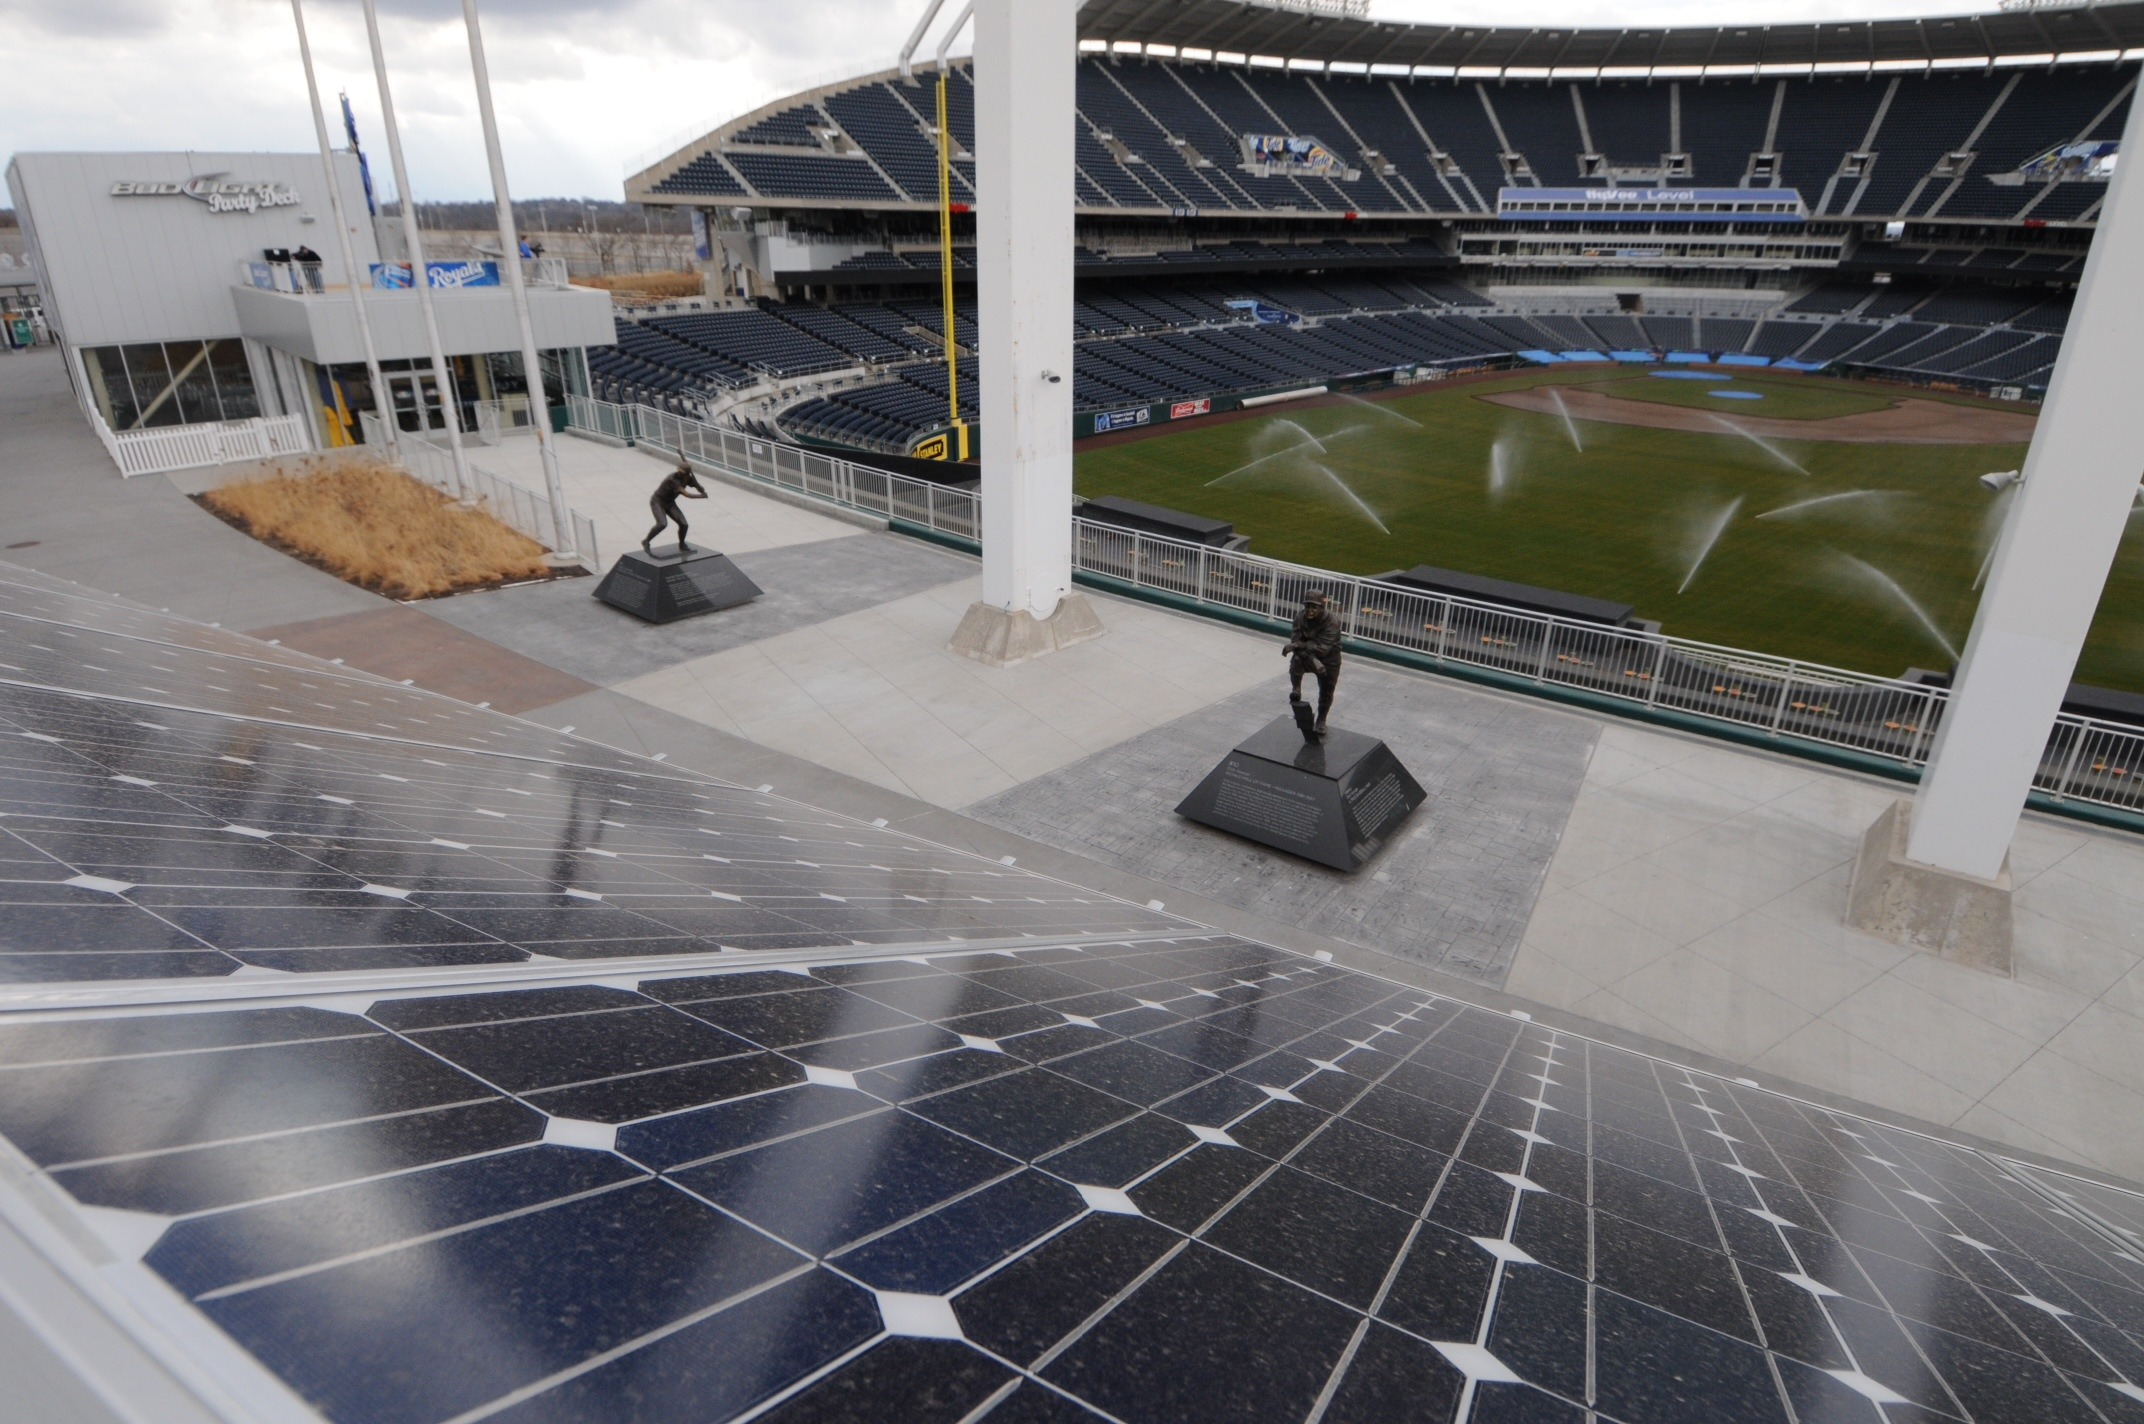 Solar energy all stars the top 5 stadiums by solar power for Solar energy games